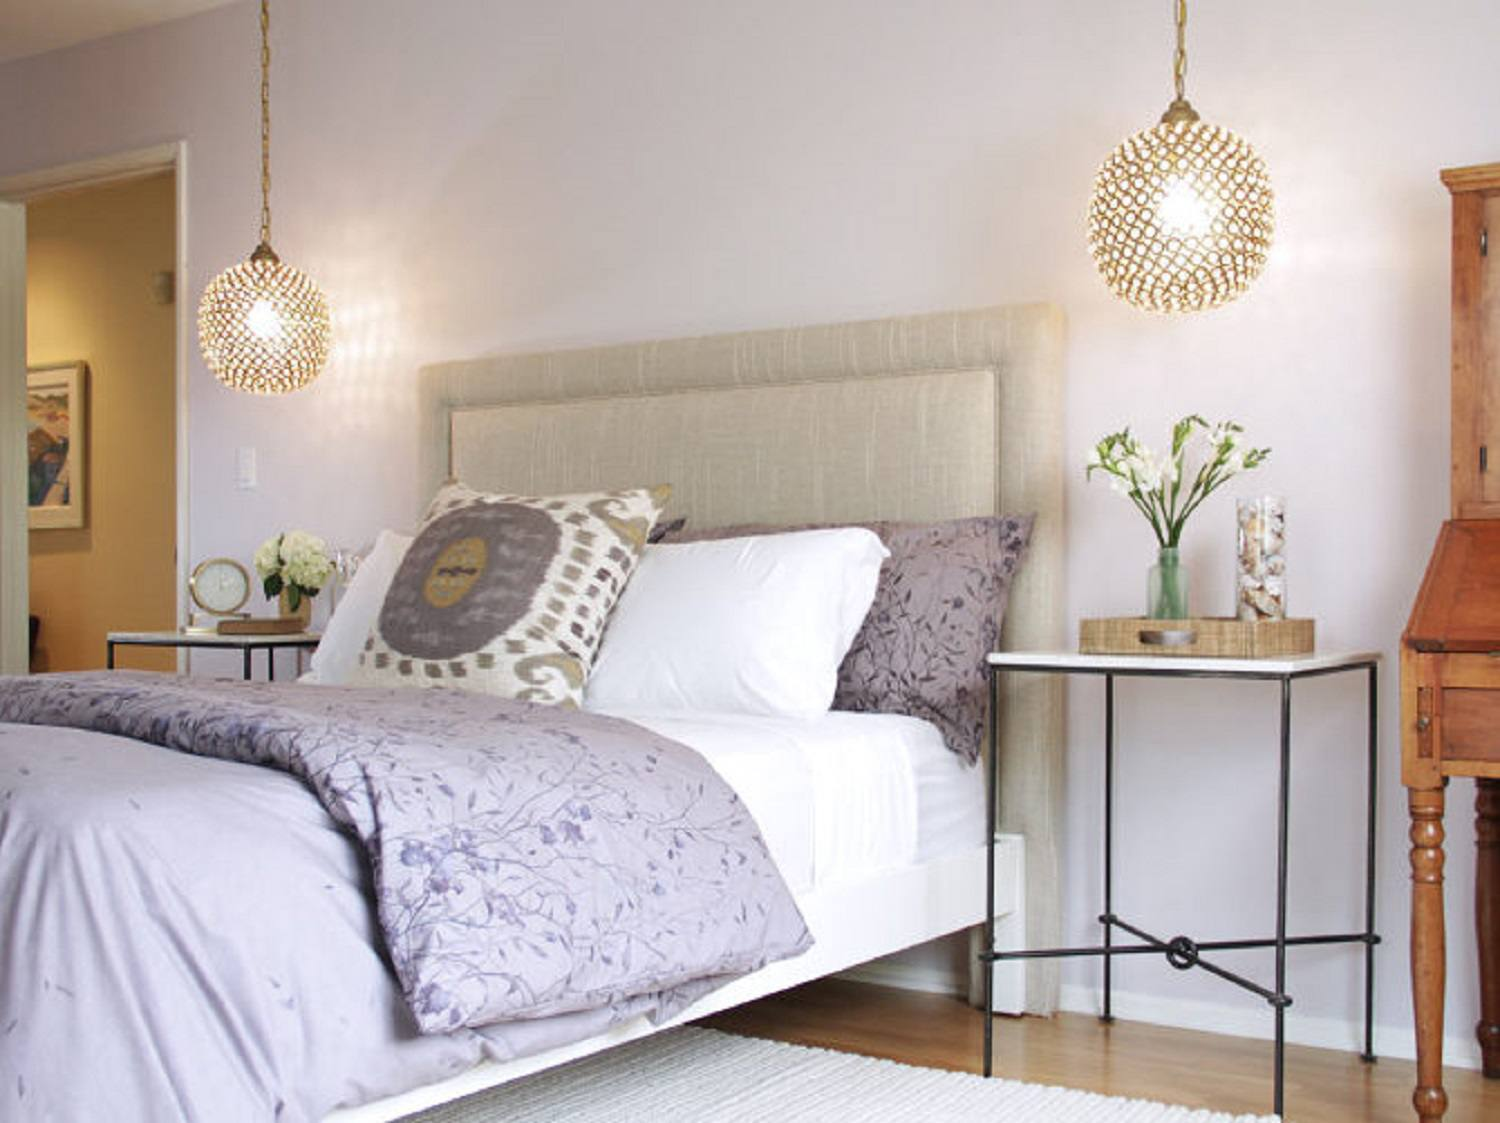 Decorating The Bedroom With Lavender